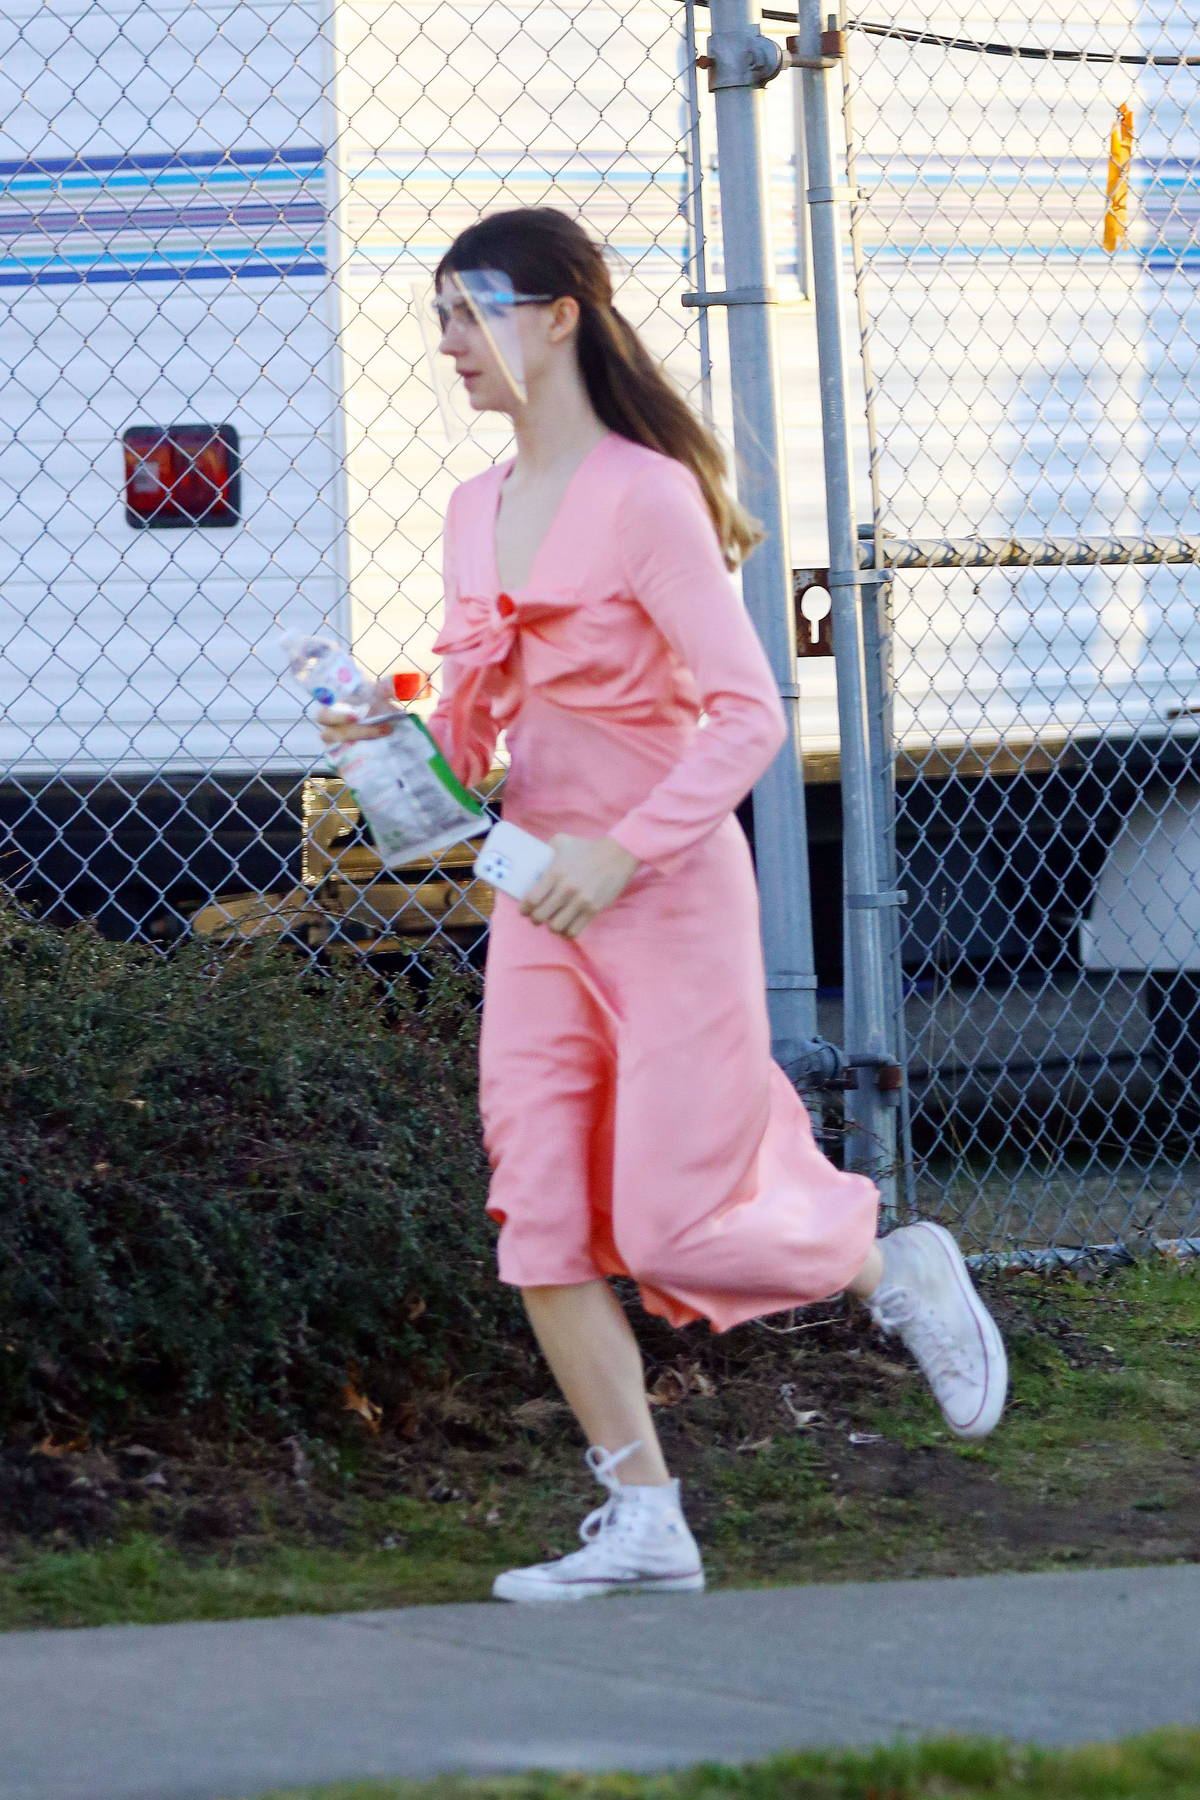 Daisy Edgar-Jones spotted in sweatsuit before changing into a pink dress while on the set of 'Fresh' in Vancouver, Canada